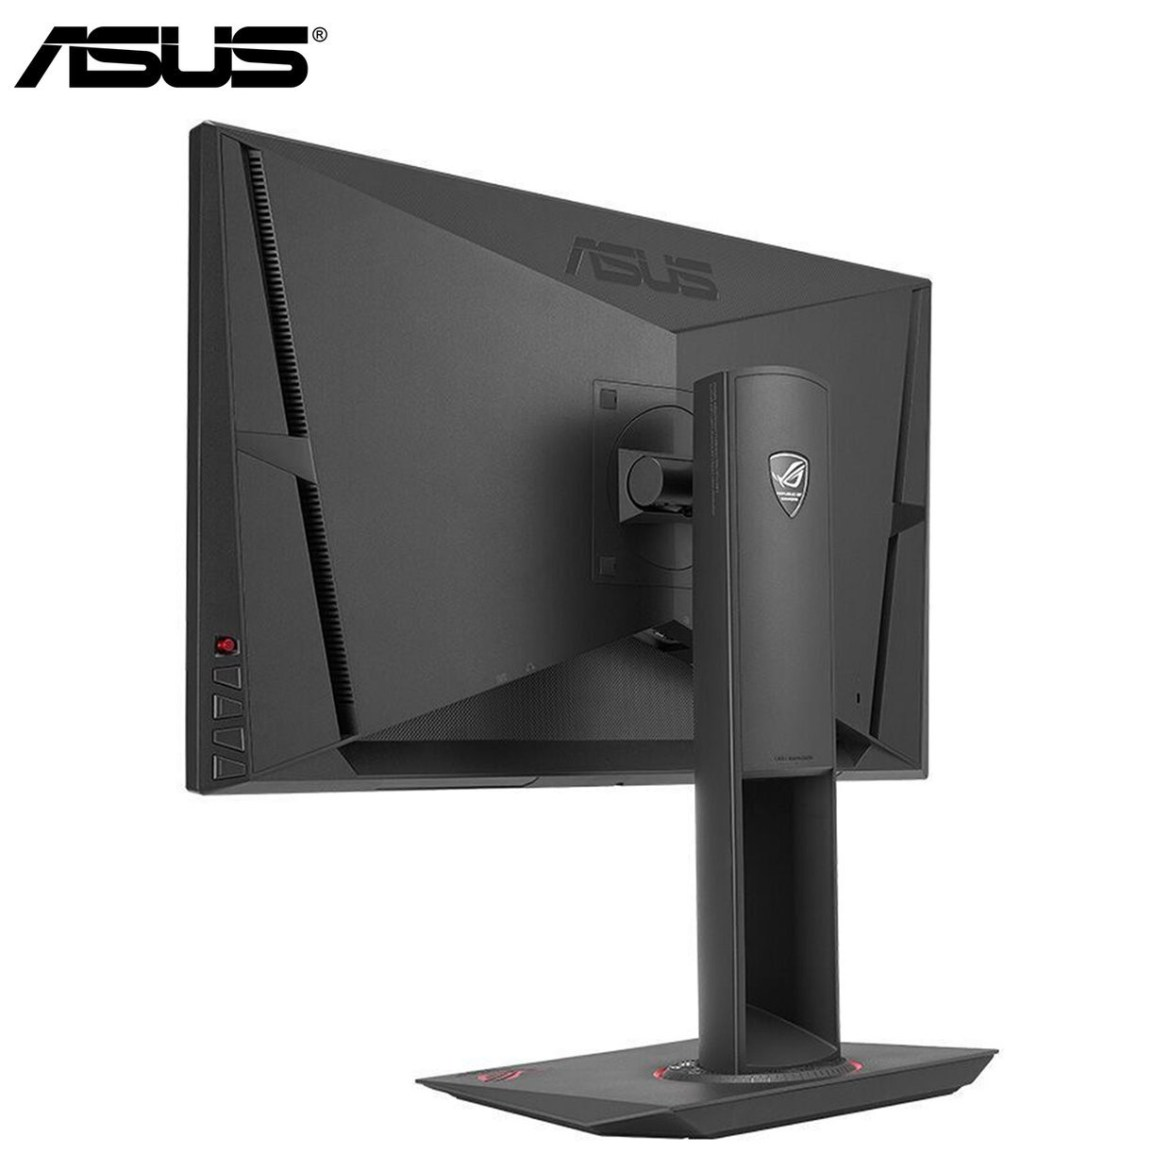 749b4f0c7a223f84ca5bf49ff110b59f Generic UJ PG279Q 27 Monitor G SYNC Eye Care Gaming With DP And HDMI Ports Black